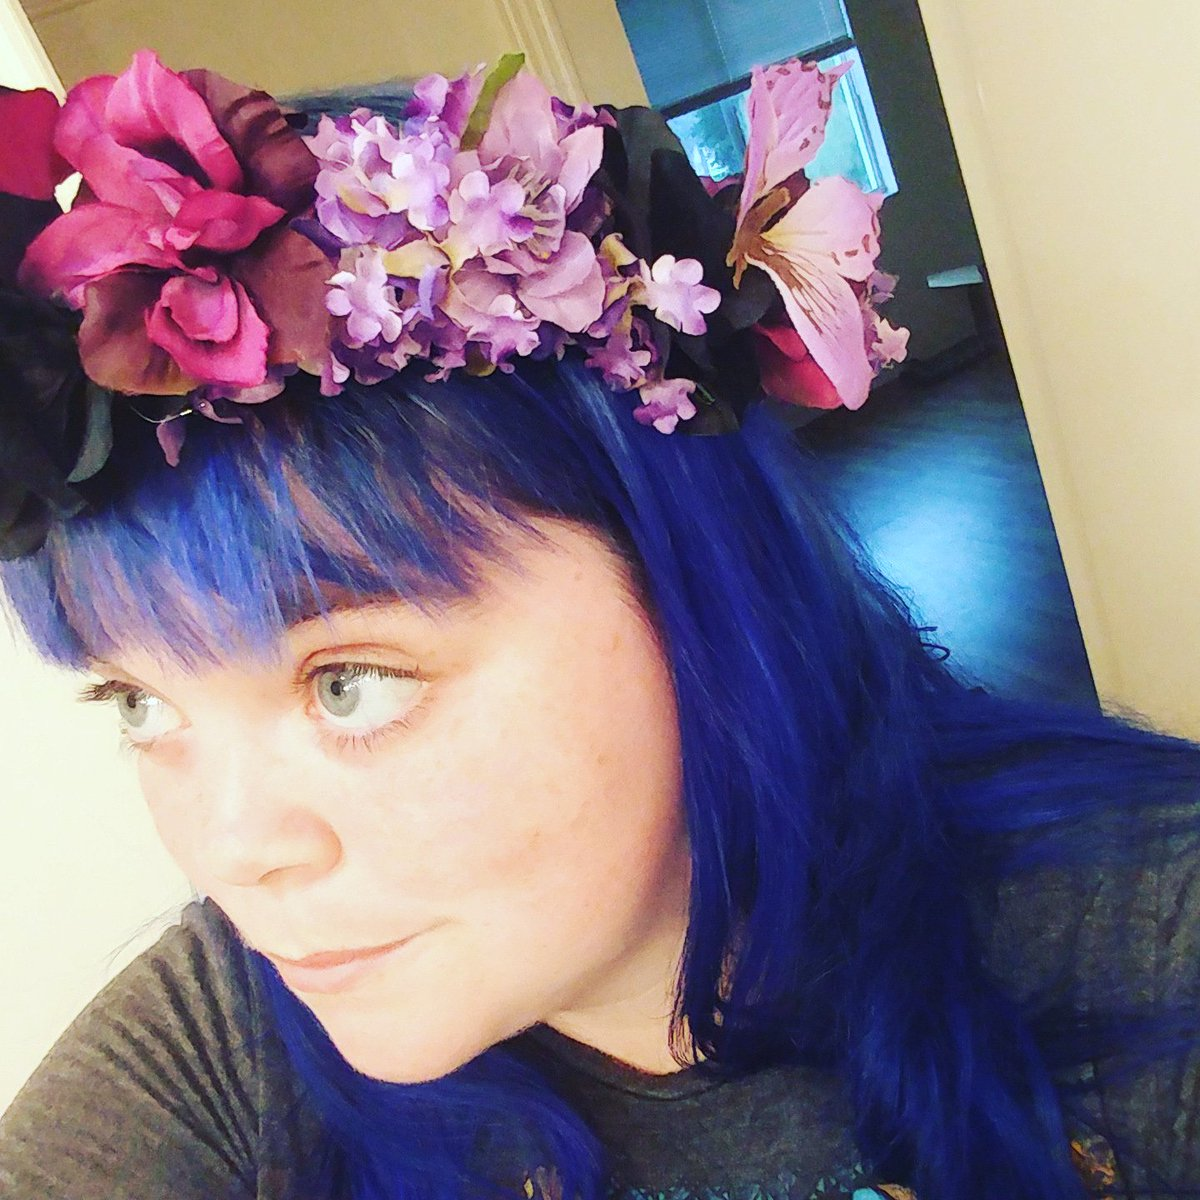 Flowercrown hashtag on twitter newest flower crown inspired by the love of hades and persephone sparks of color deep colors and fun flowercrown picitter4nrmzwmt8l izmirmasajfo